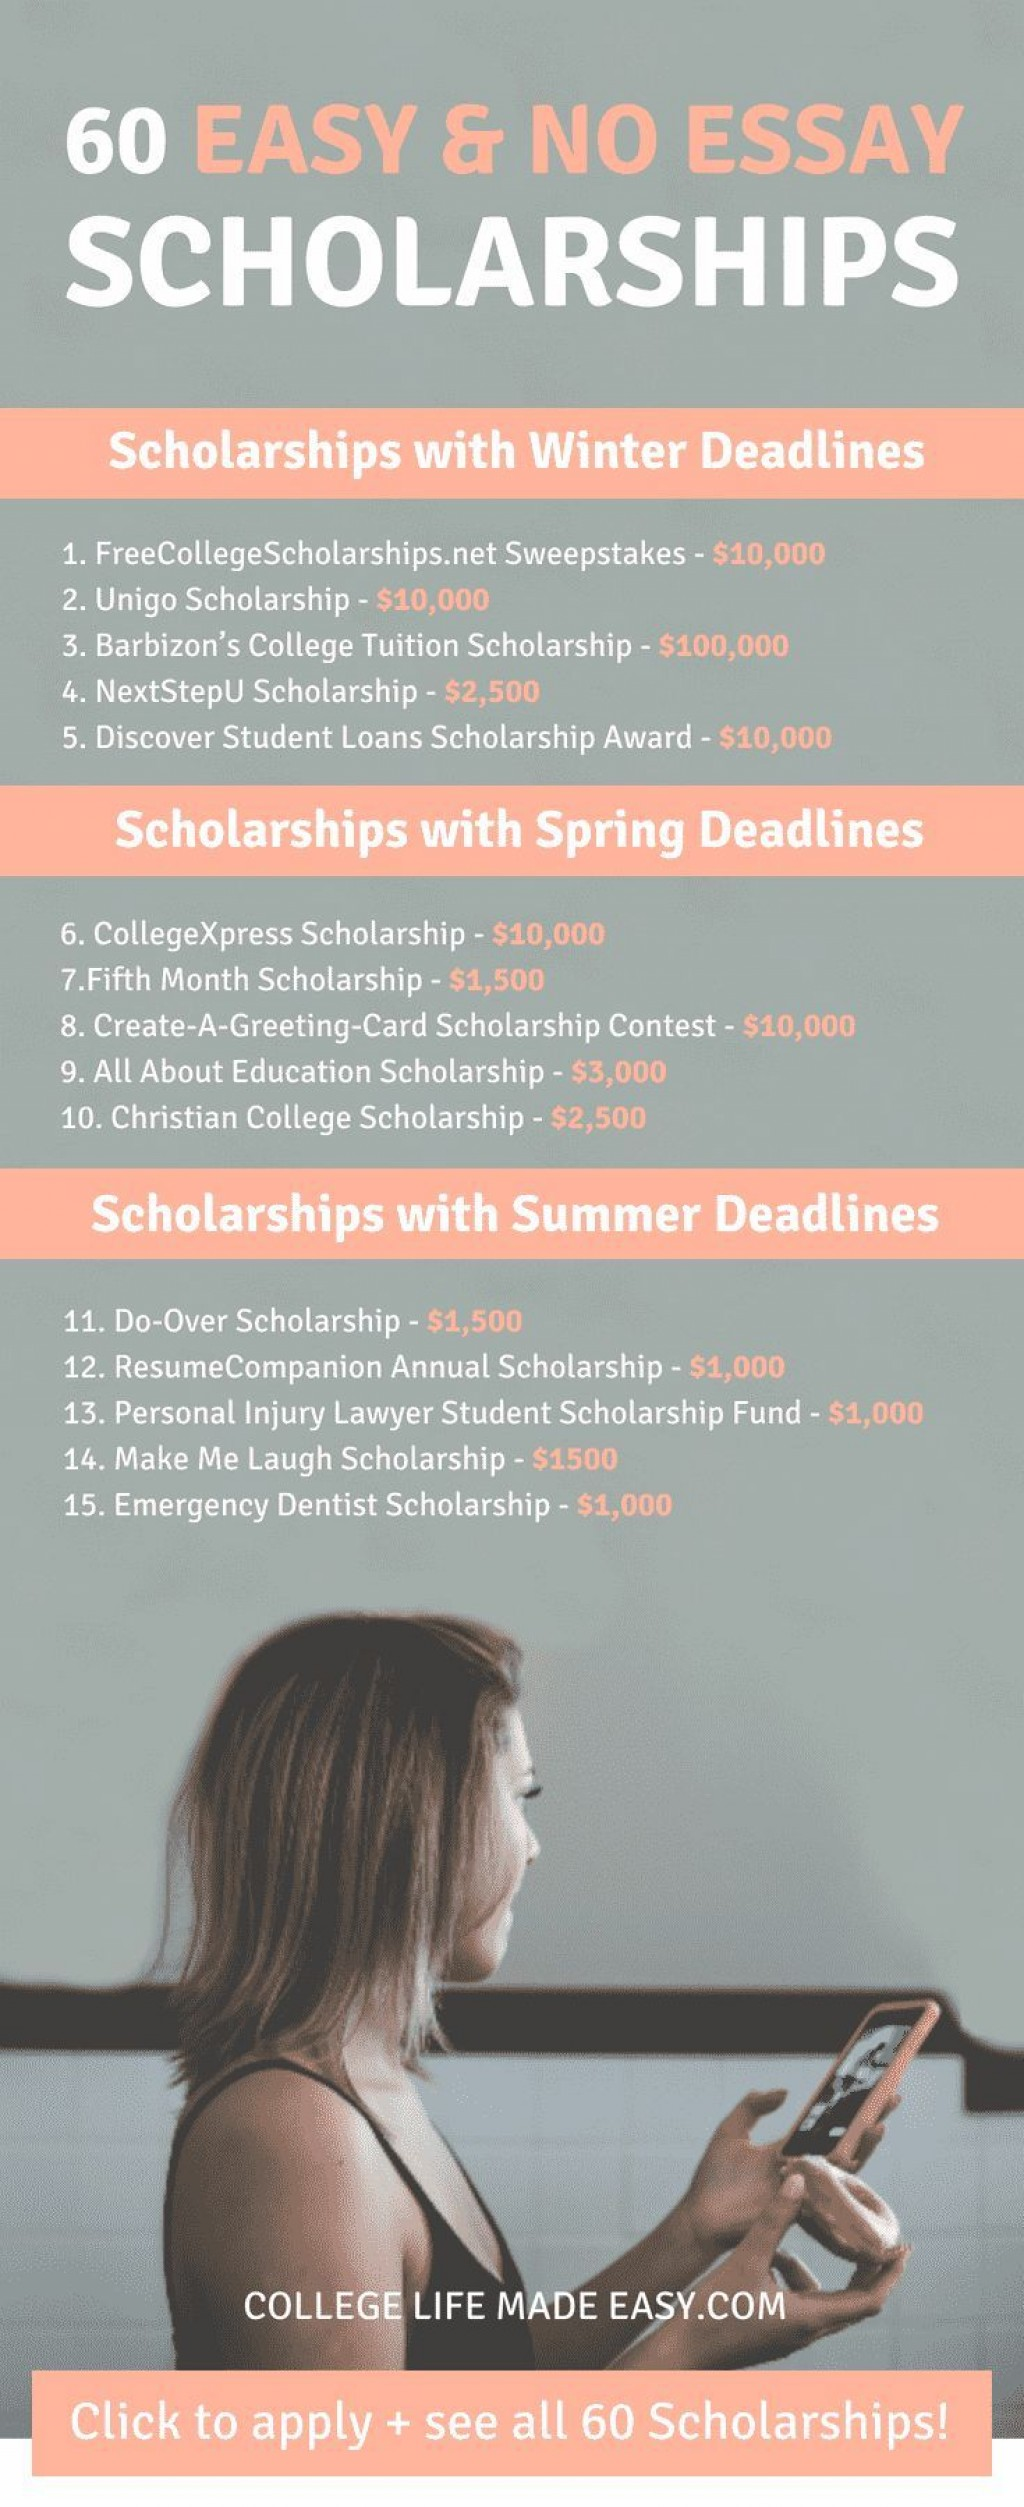 006 No Essay Scholarship Wondrous Scholarships For High School Freshman Seniors 2019 Large